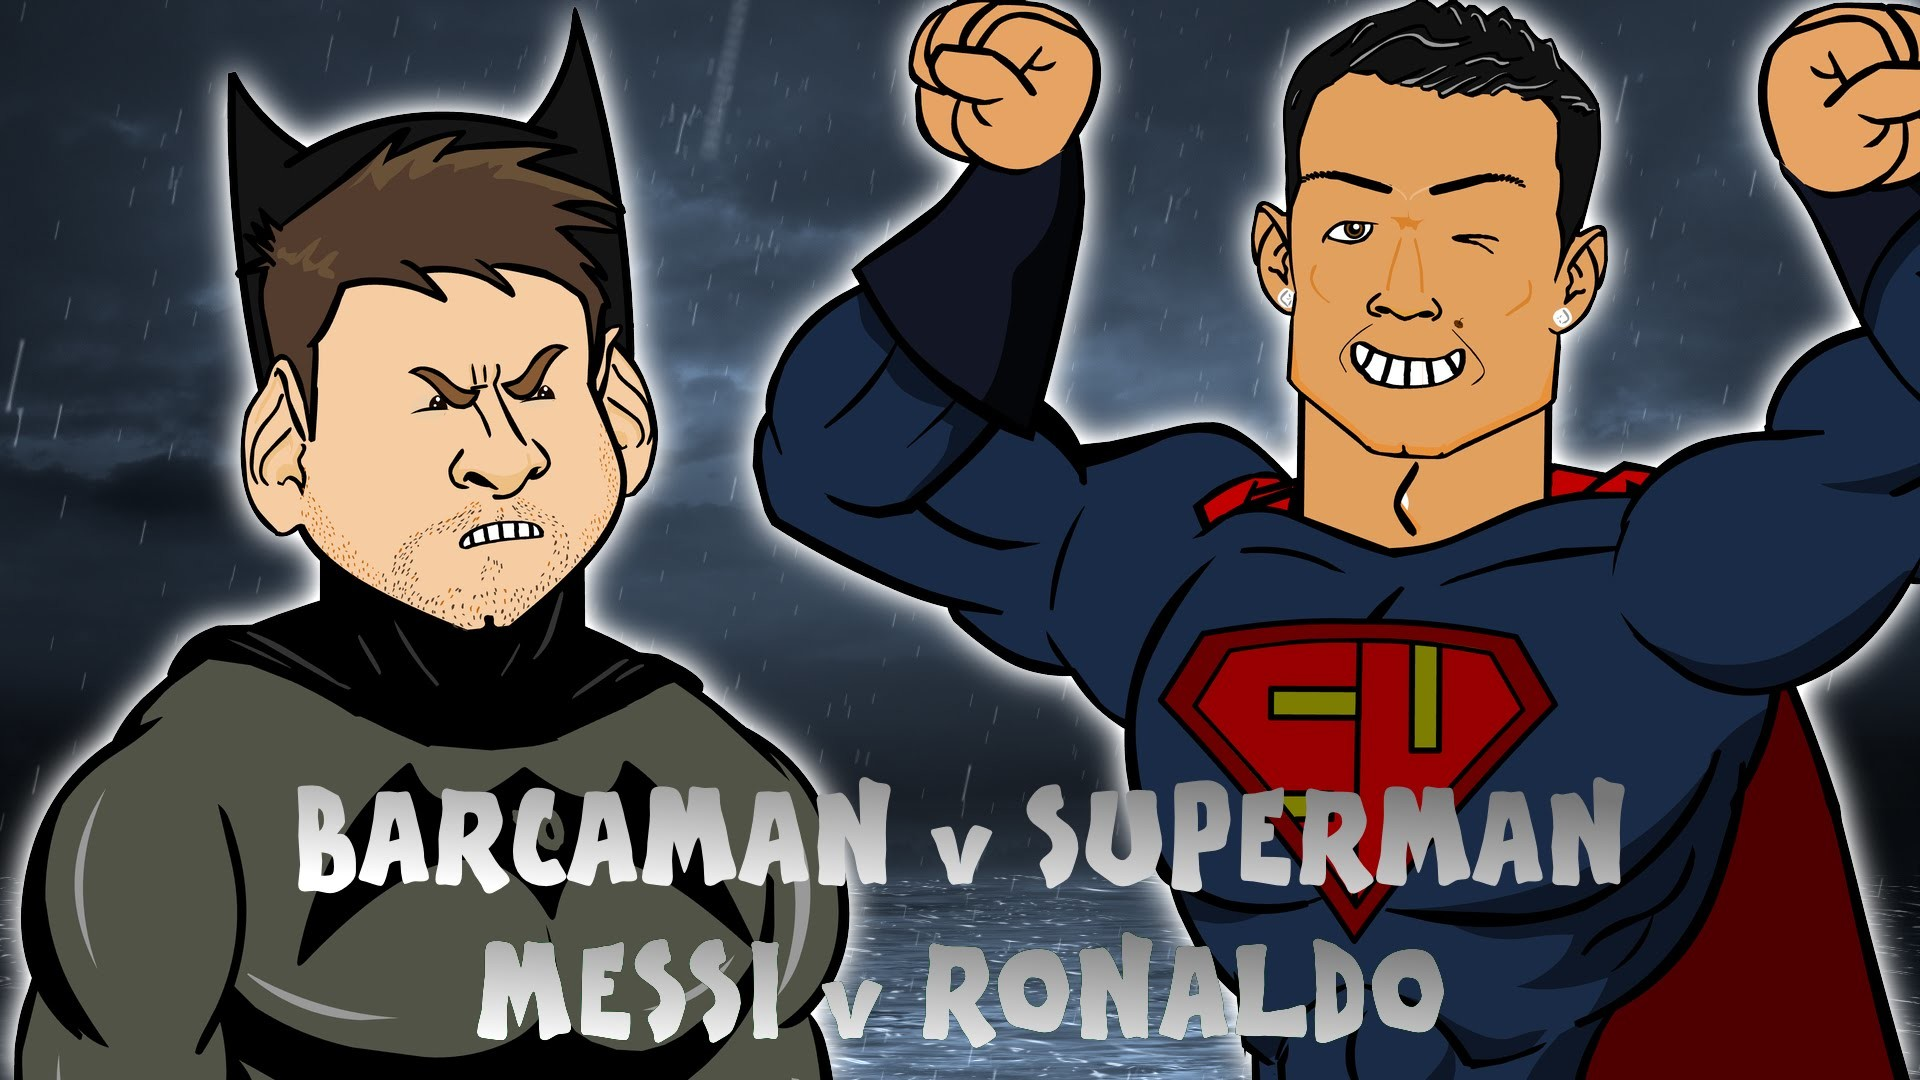 1920x1080 Messi vs Ronaldo: BATMAN v SUPERMAN (Cartoon Parody El Clasico 2016  Barcaman vs Superman) - YouTube